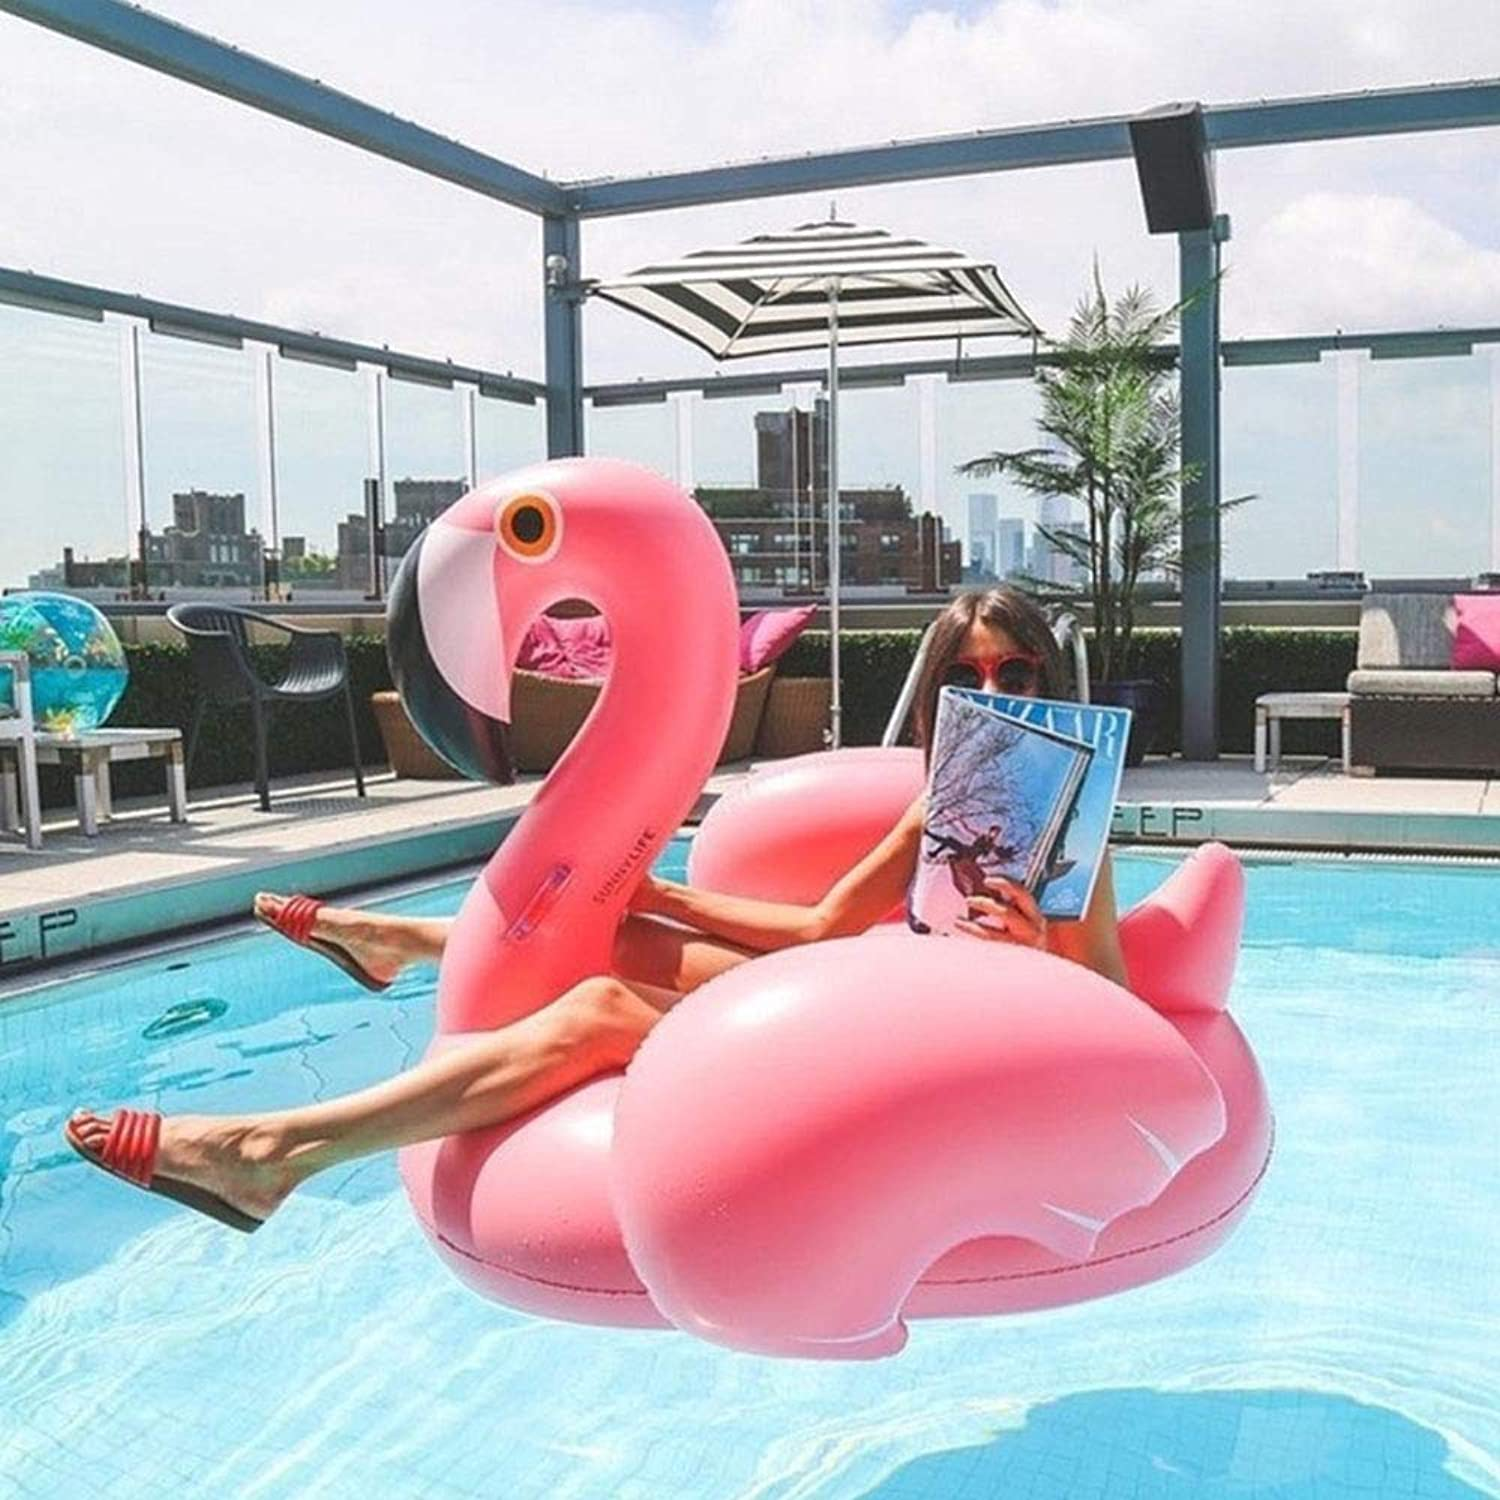 Comfot Flamingo Swimming Pool Float Animal Inflatable Float for Pool Summer Party Beach Lounge